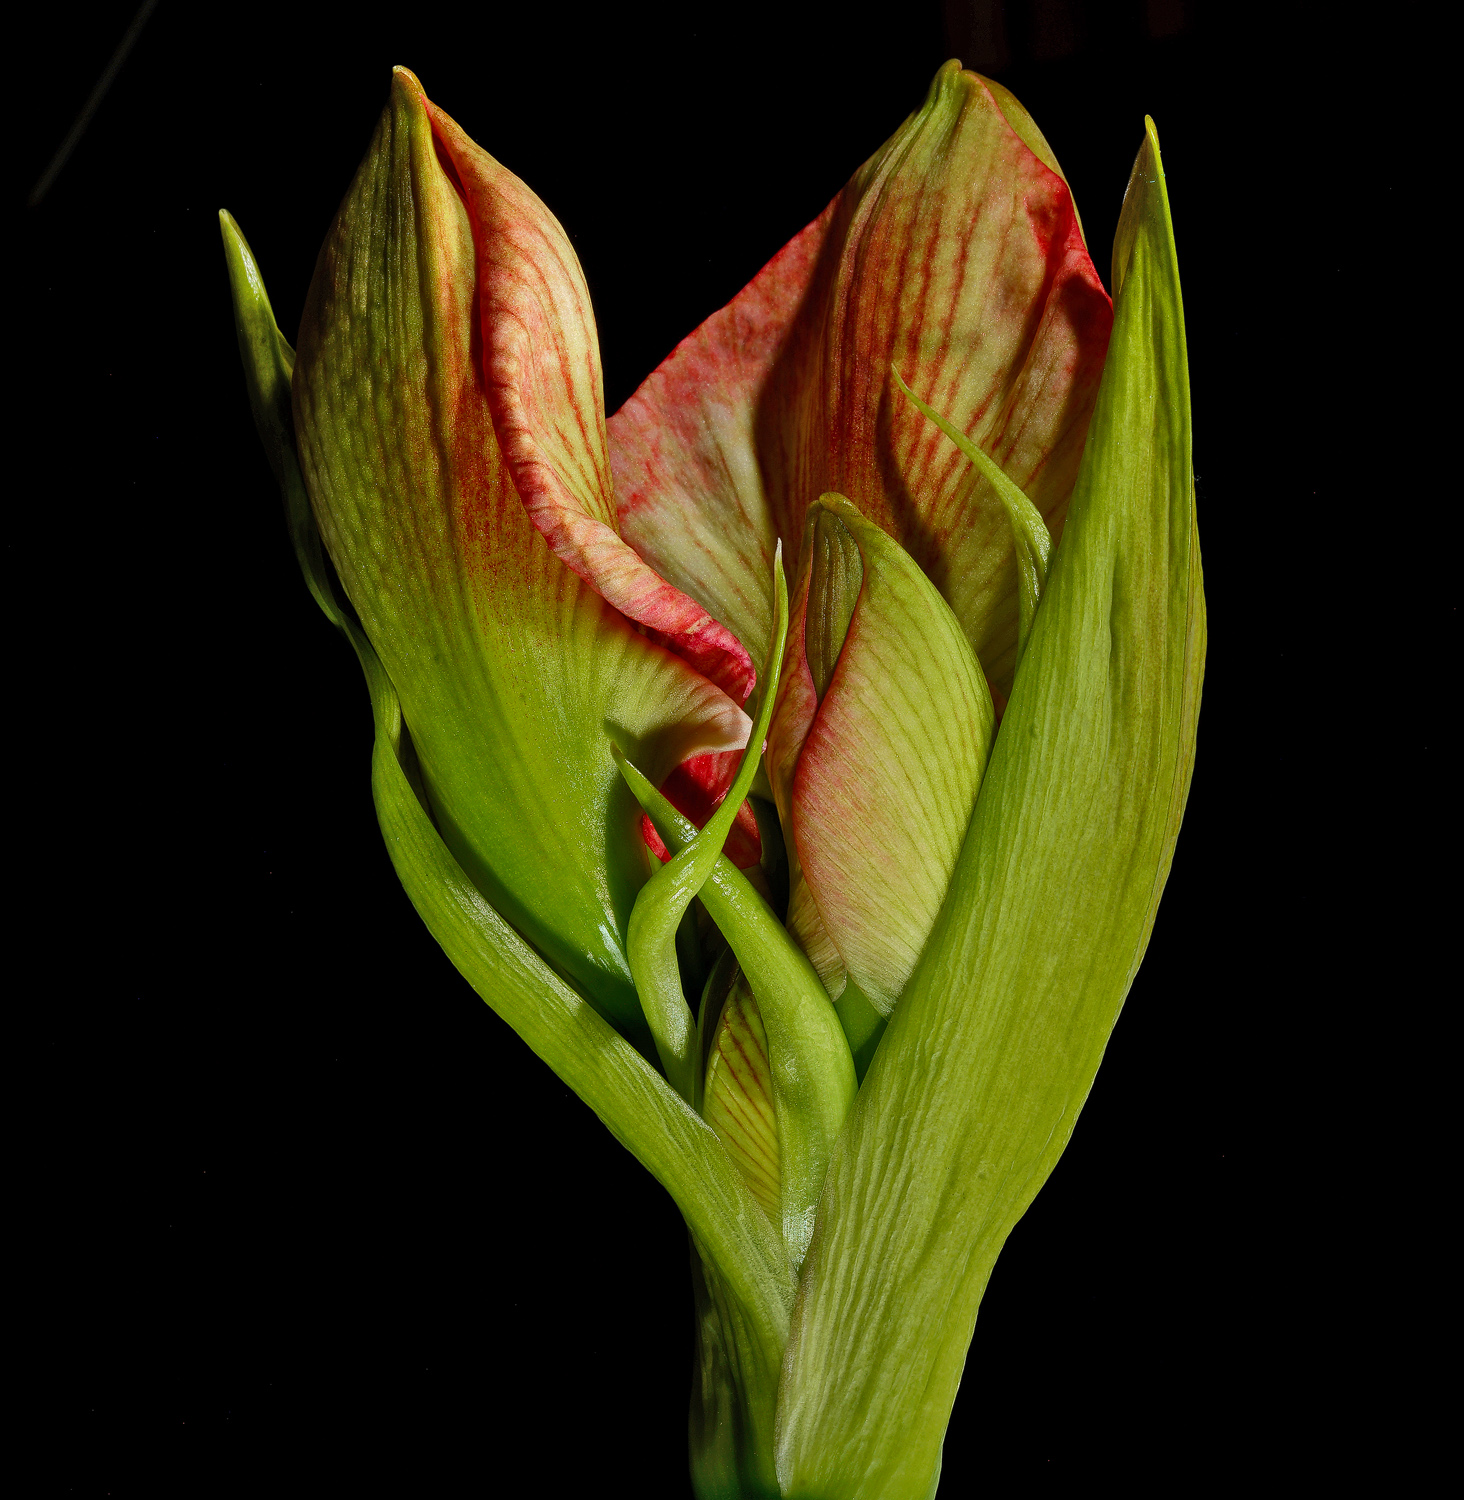 amaryllis unfolding dsc aw author sava gregory a and verena